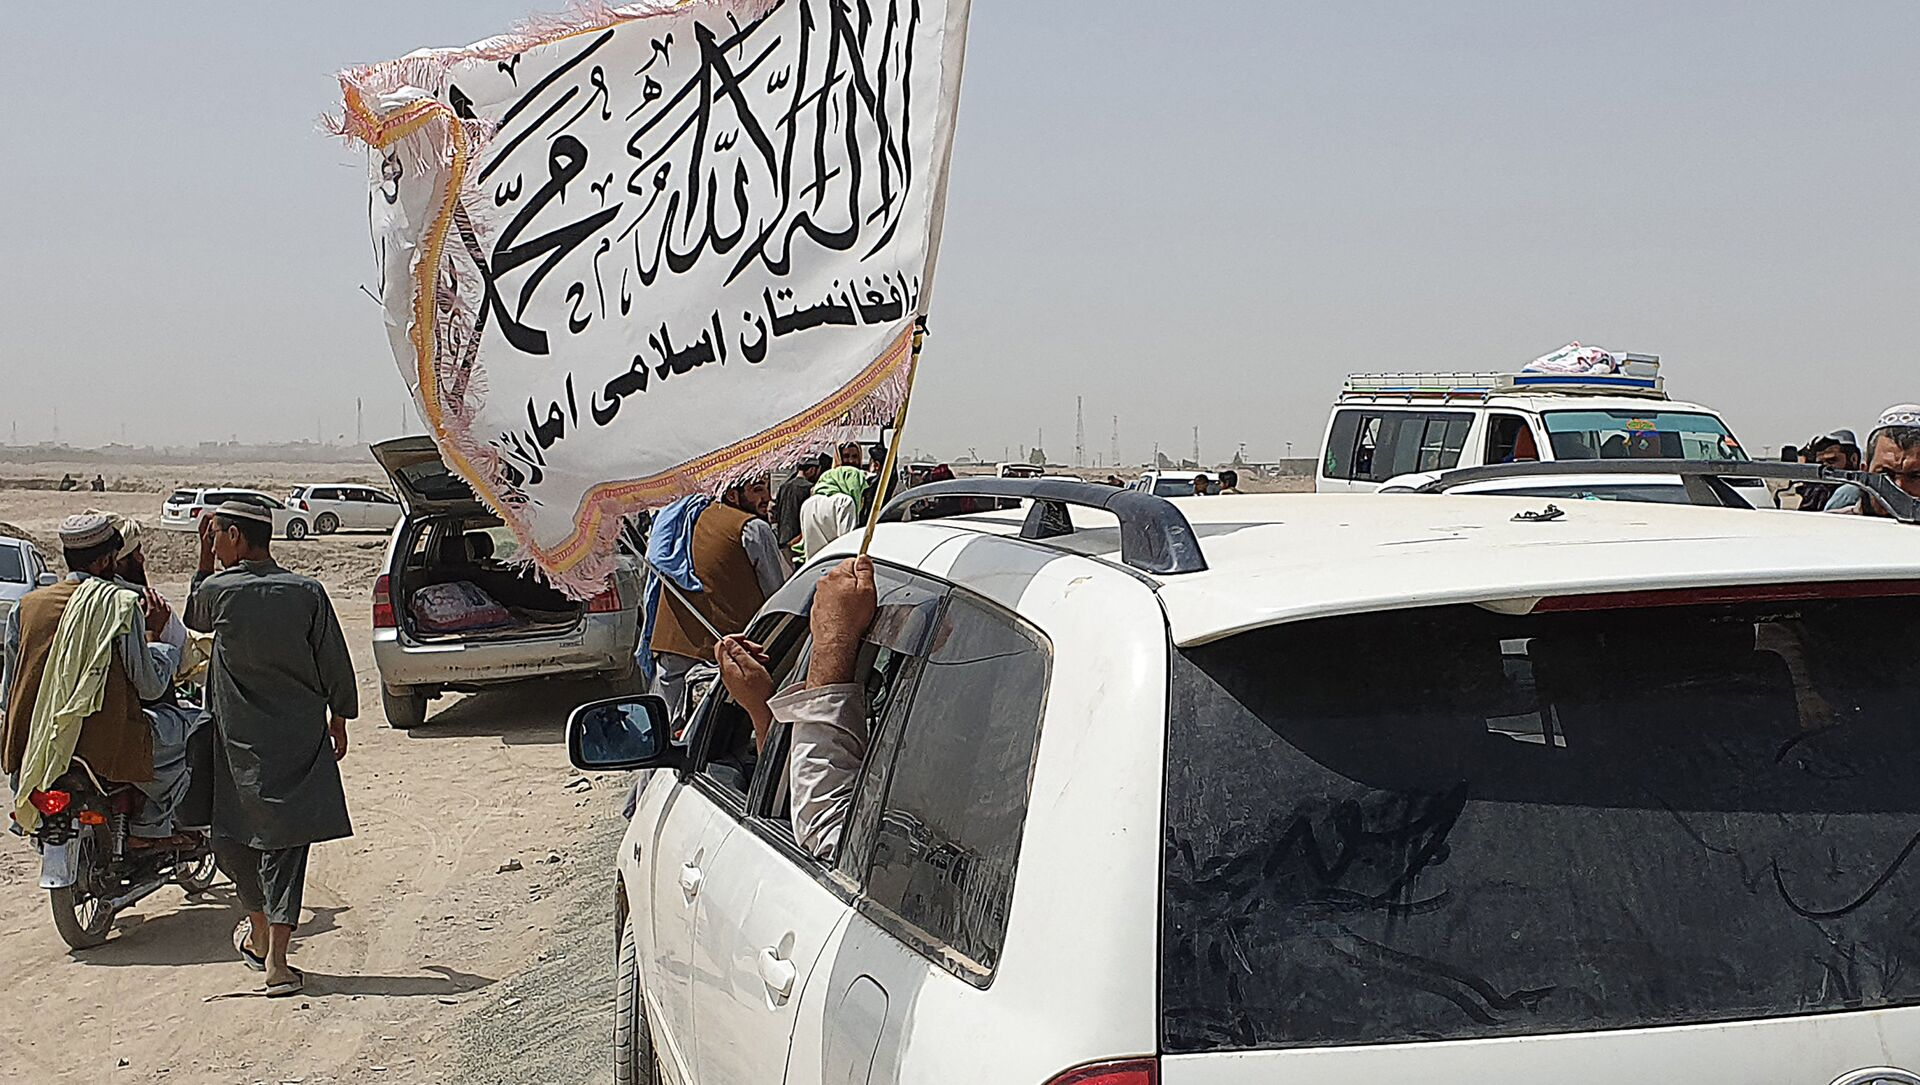 People wave a Taliban flag as they drive through the Pakistani border town of Chaman on July 14, 2021, after the Taliban claimed they had captured the Afghan side of the border crossing of Spin Boldak along the frontier with Pakistan - Sputnik International, 1920, 04.08.2021